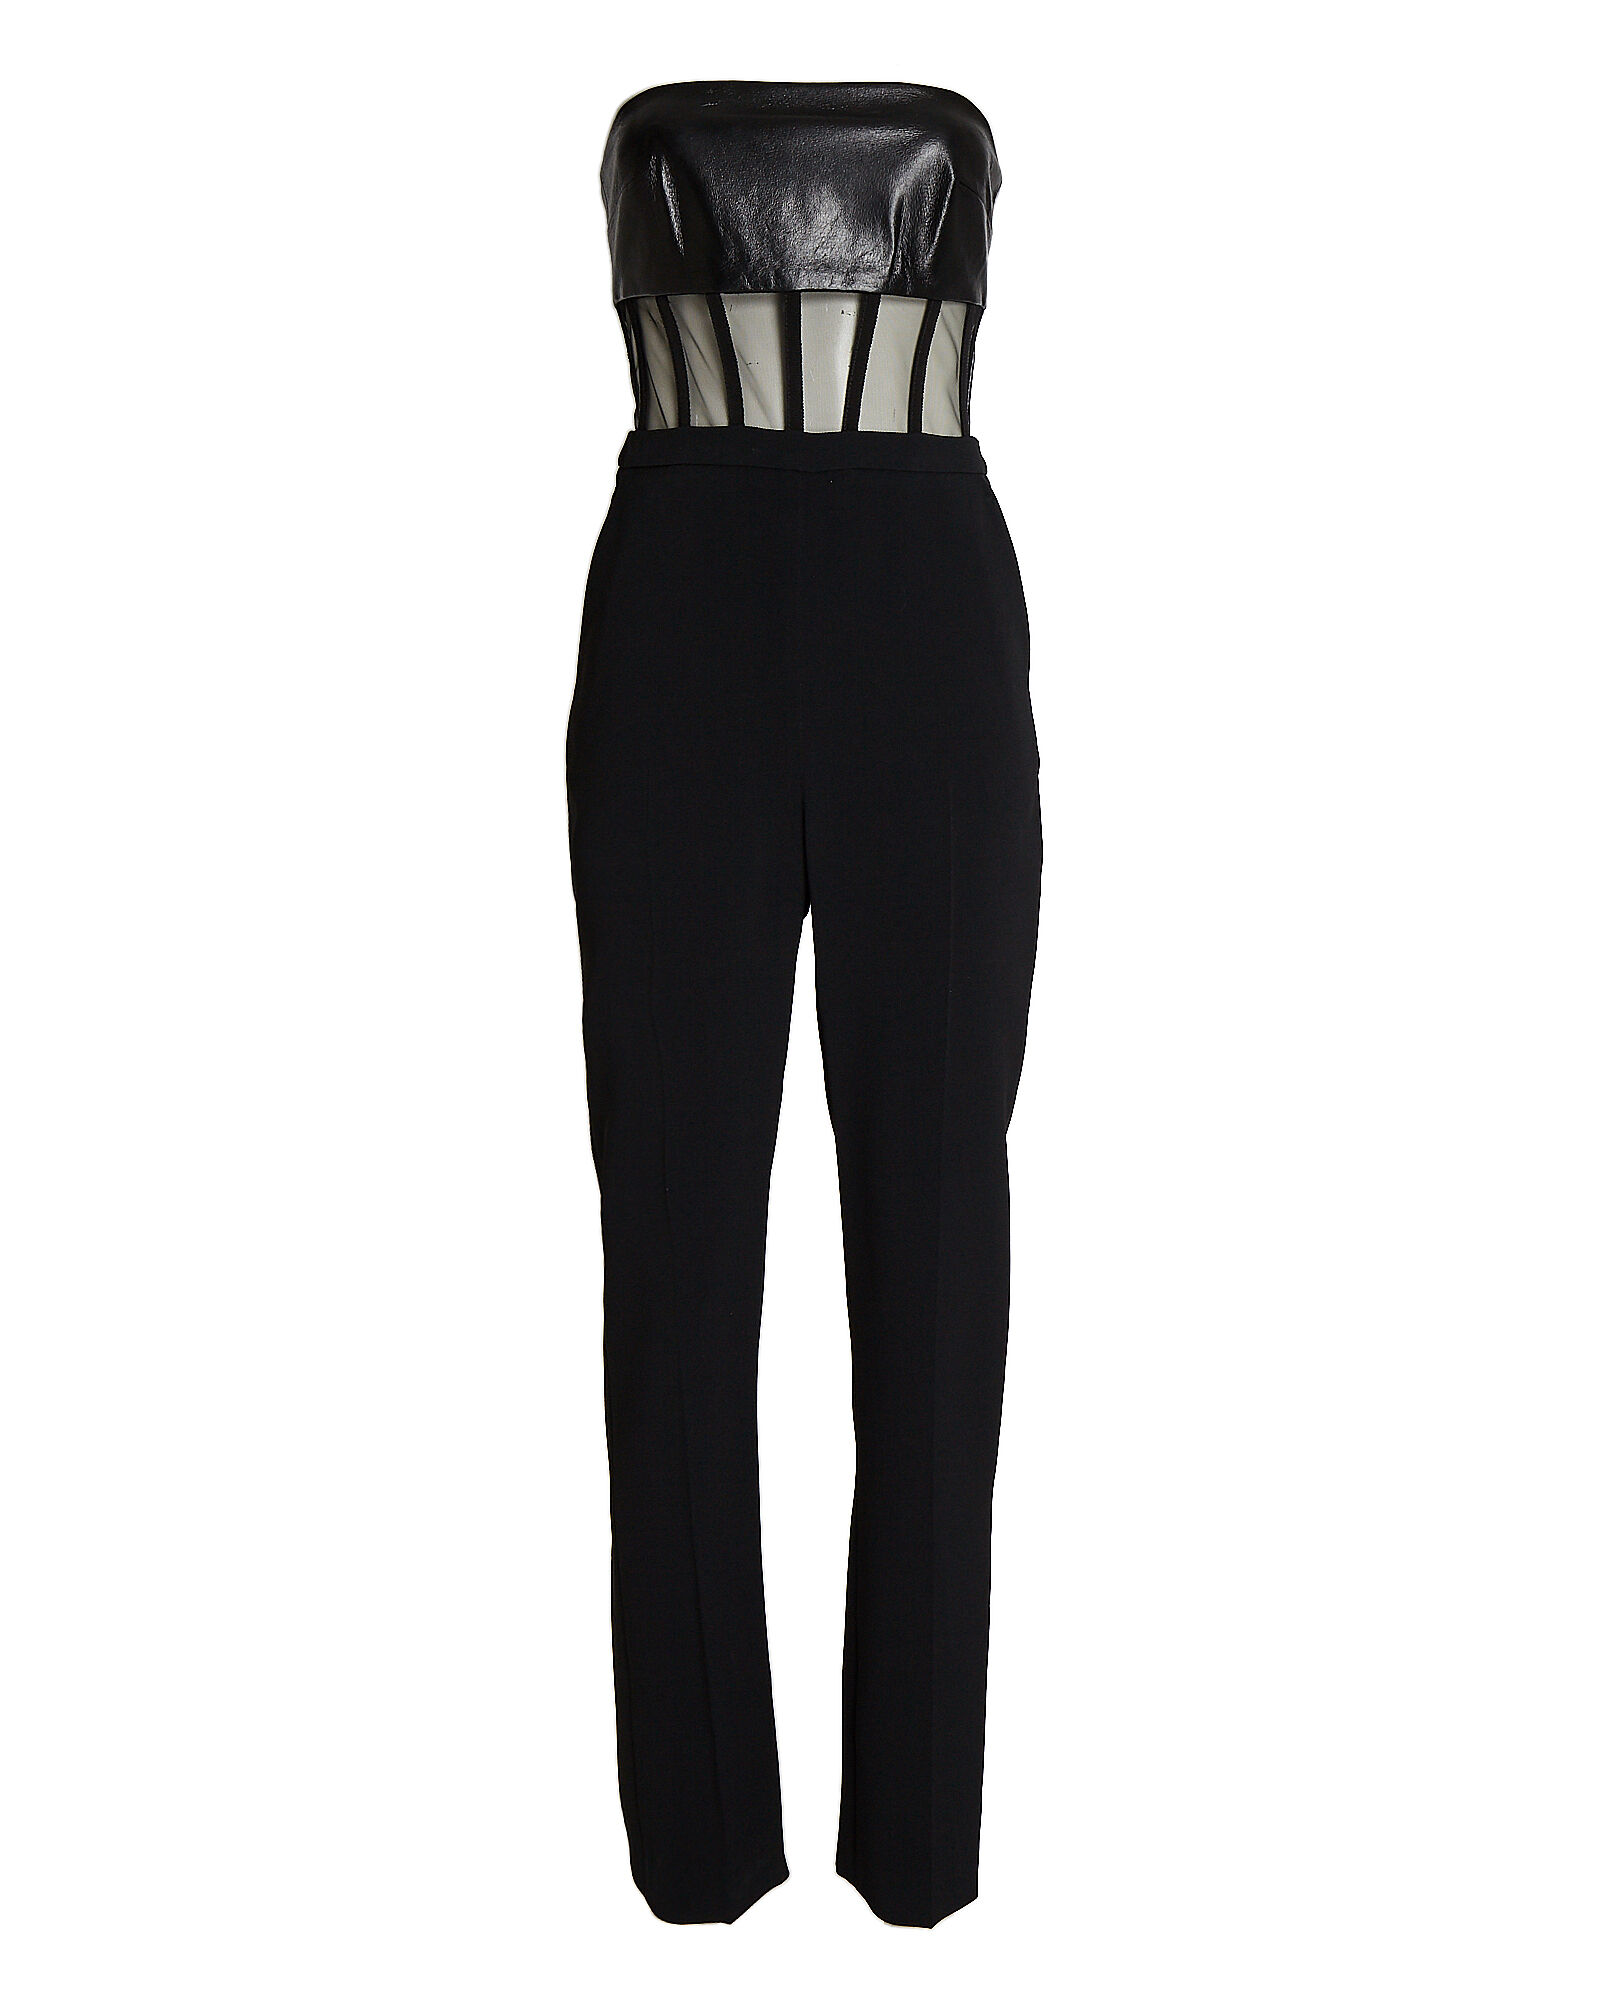 Leather-Trimmed Strapless Jumpsuit, BLACK, hi-res